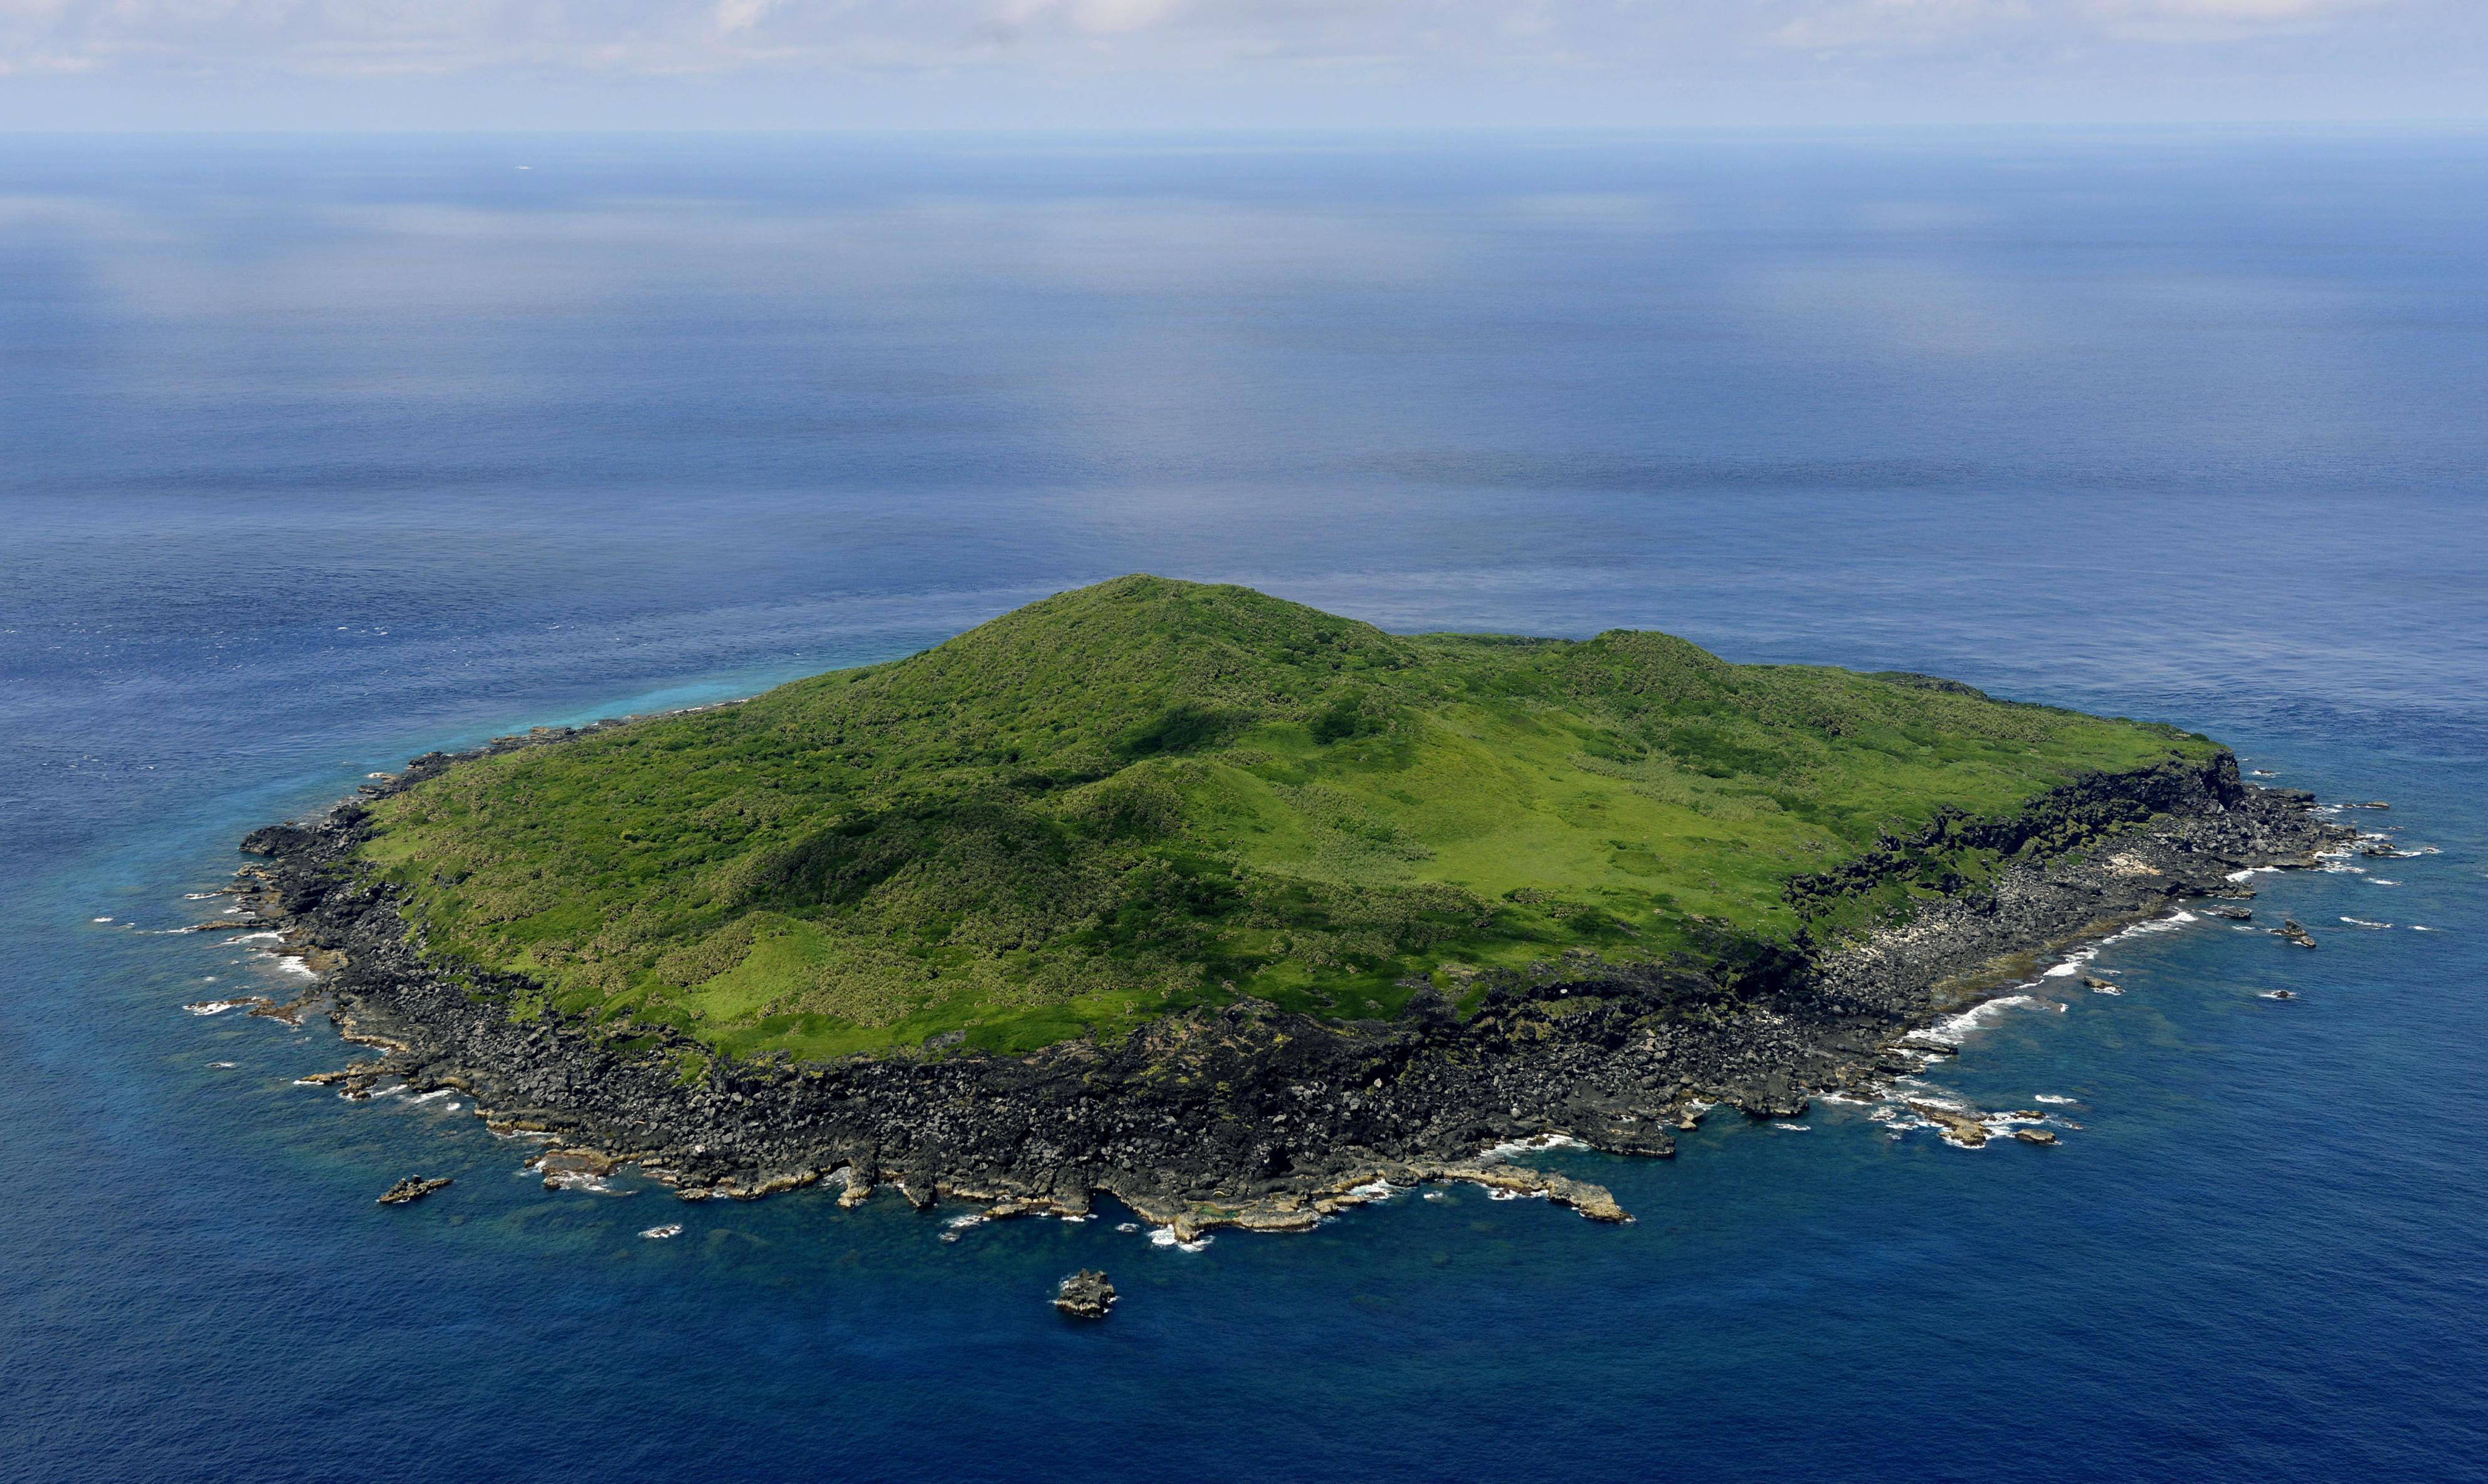 The area near Kubajima (above), part of the Japan-administered Senkaku Islands in the East China Sea, was the scene of an incursion by a Chinese vessel into the contiguous zone surrounding the island on June 9. | KYODO